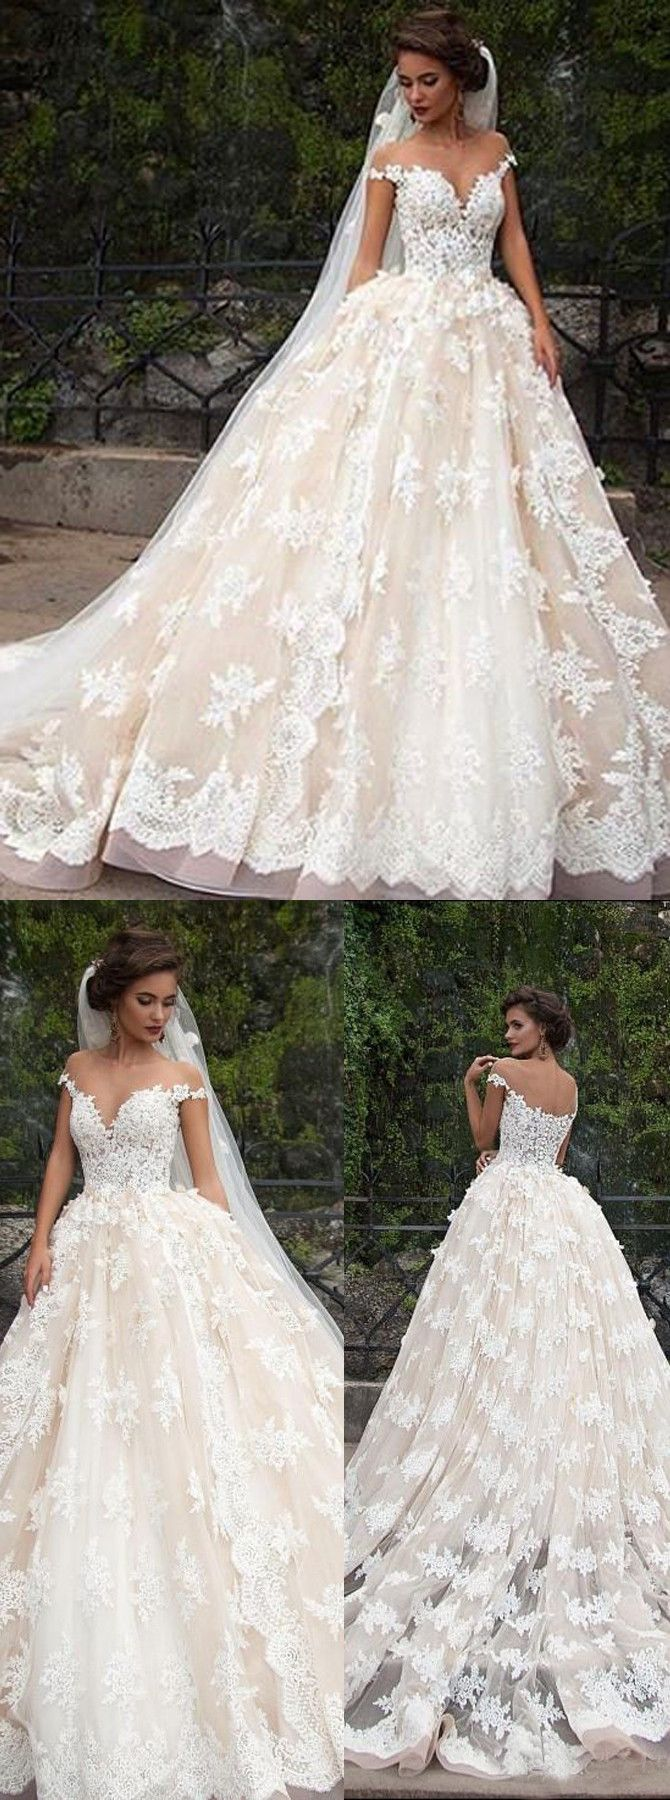 unique wedding dresses,lace wedding dresses,court train wedding dresses,church wedding dresses,bridal gowns @simpledress2480